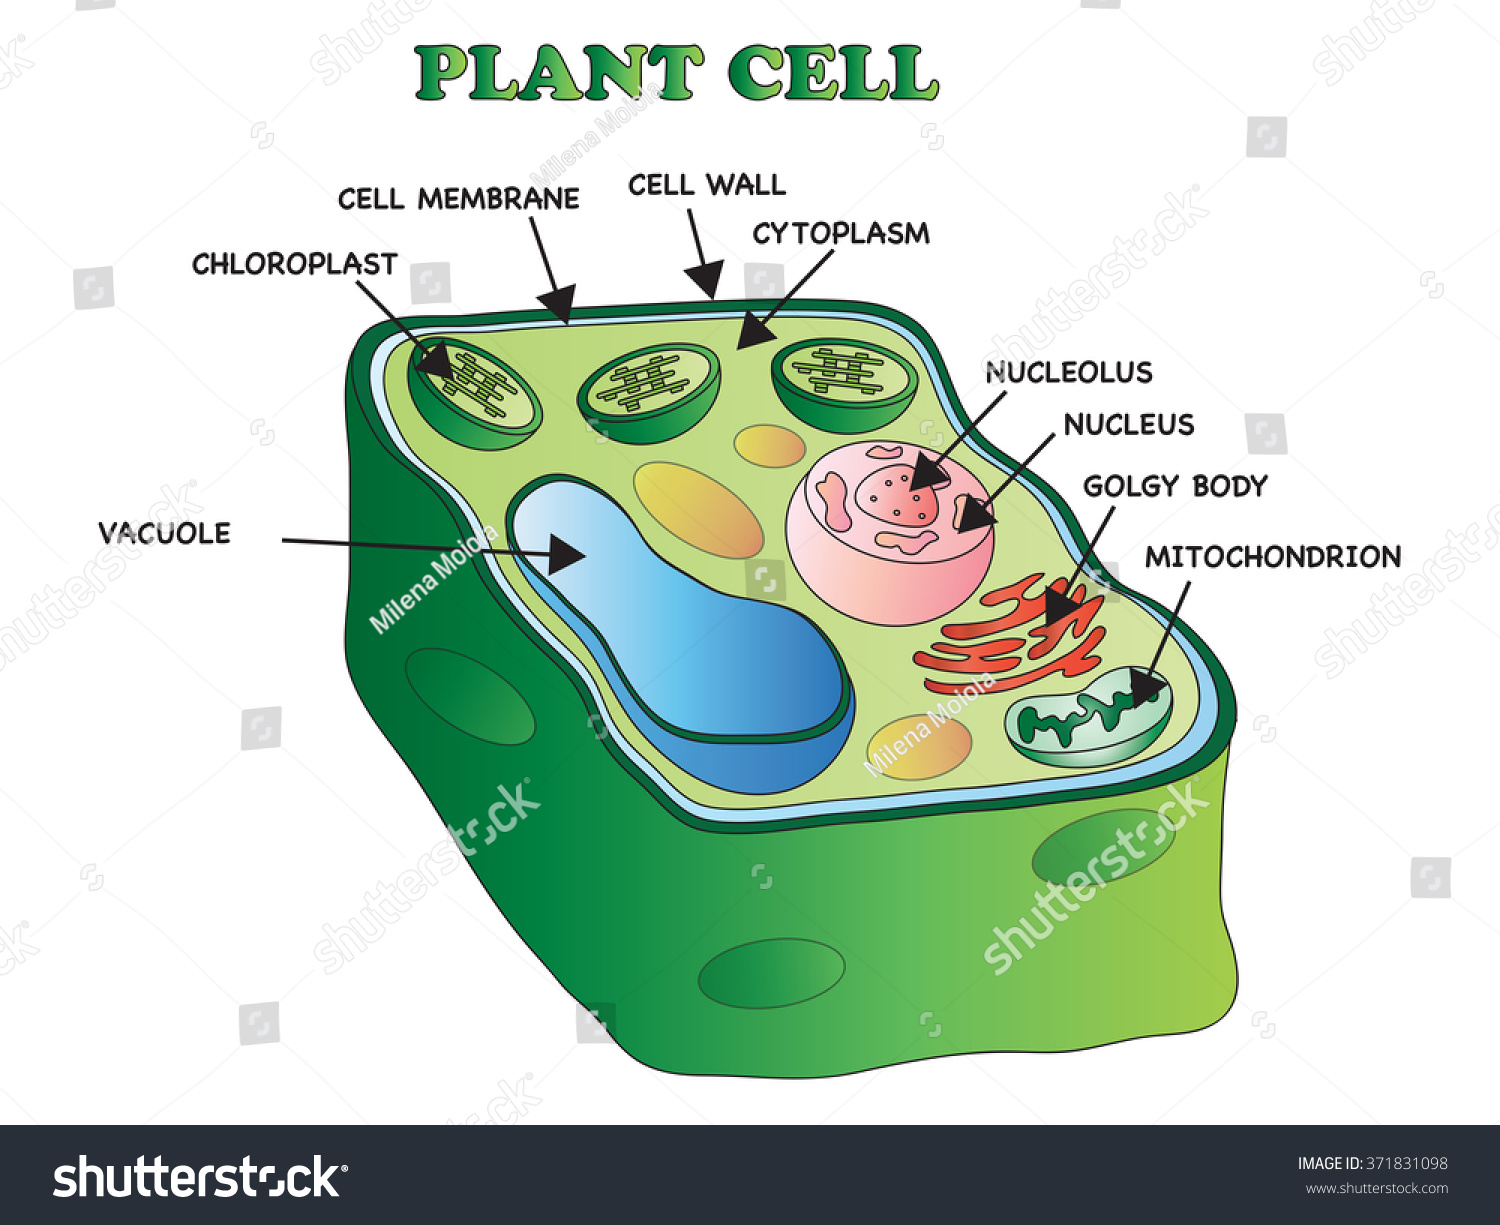 royalty-free illustration of an plant cell #371831098 stock photo